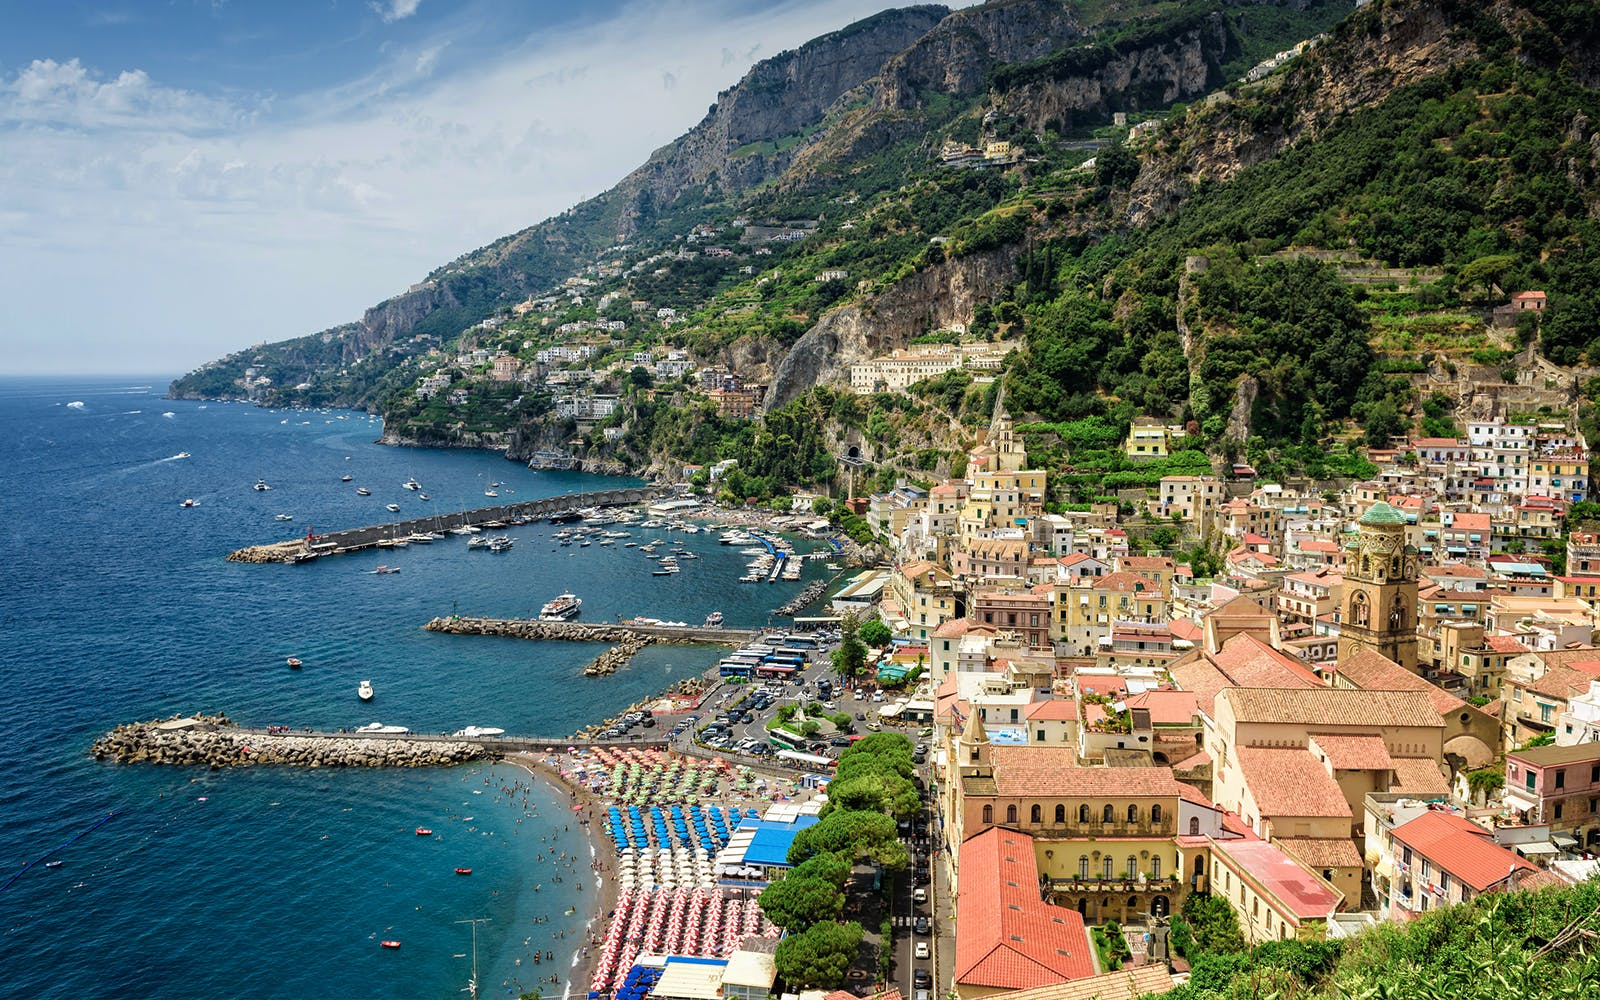 pompeii & amalfi coast full day tour from rome-4